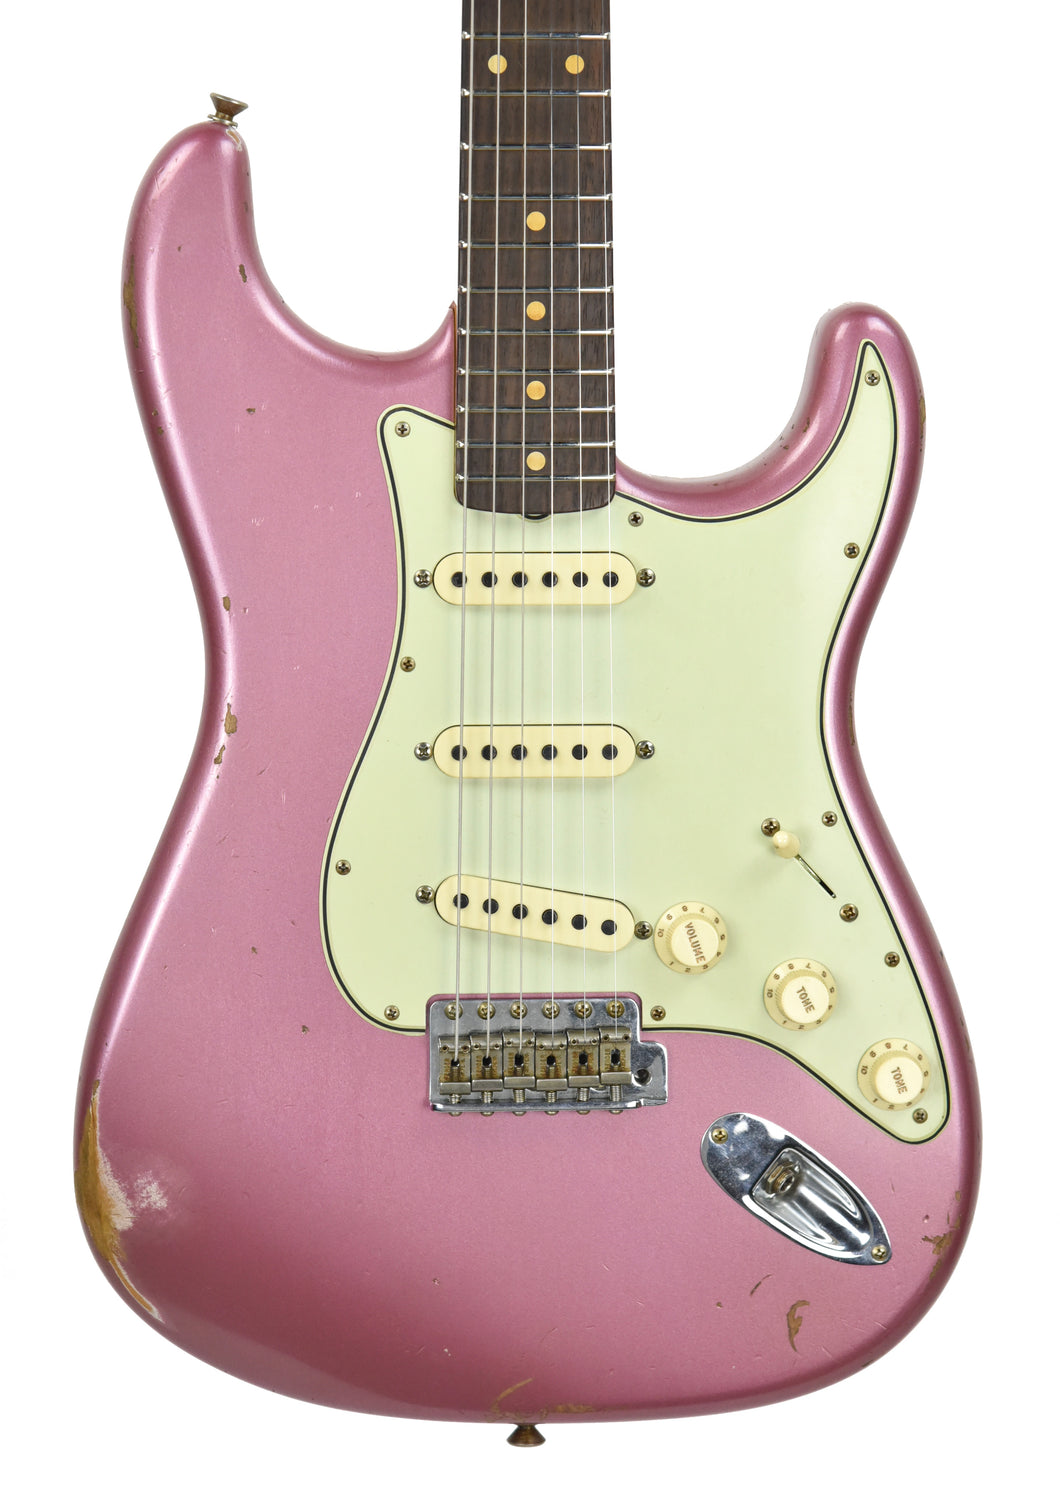 Fender Custom Shop 61 Stratocaster Relic in Burgundy Mist Metallic CZ542891 - The Music Gallery